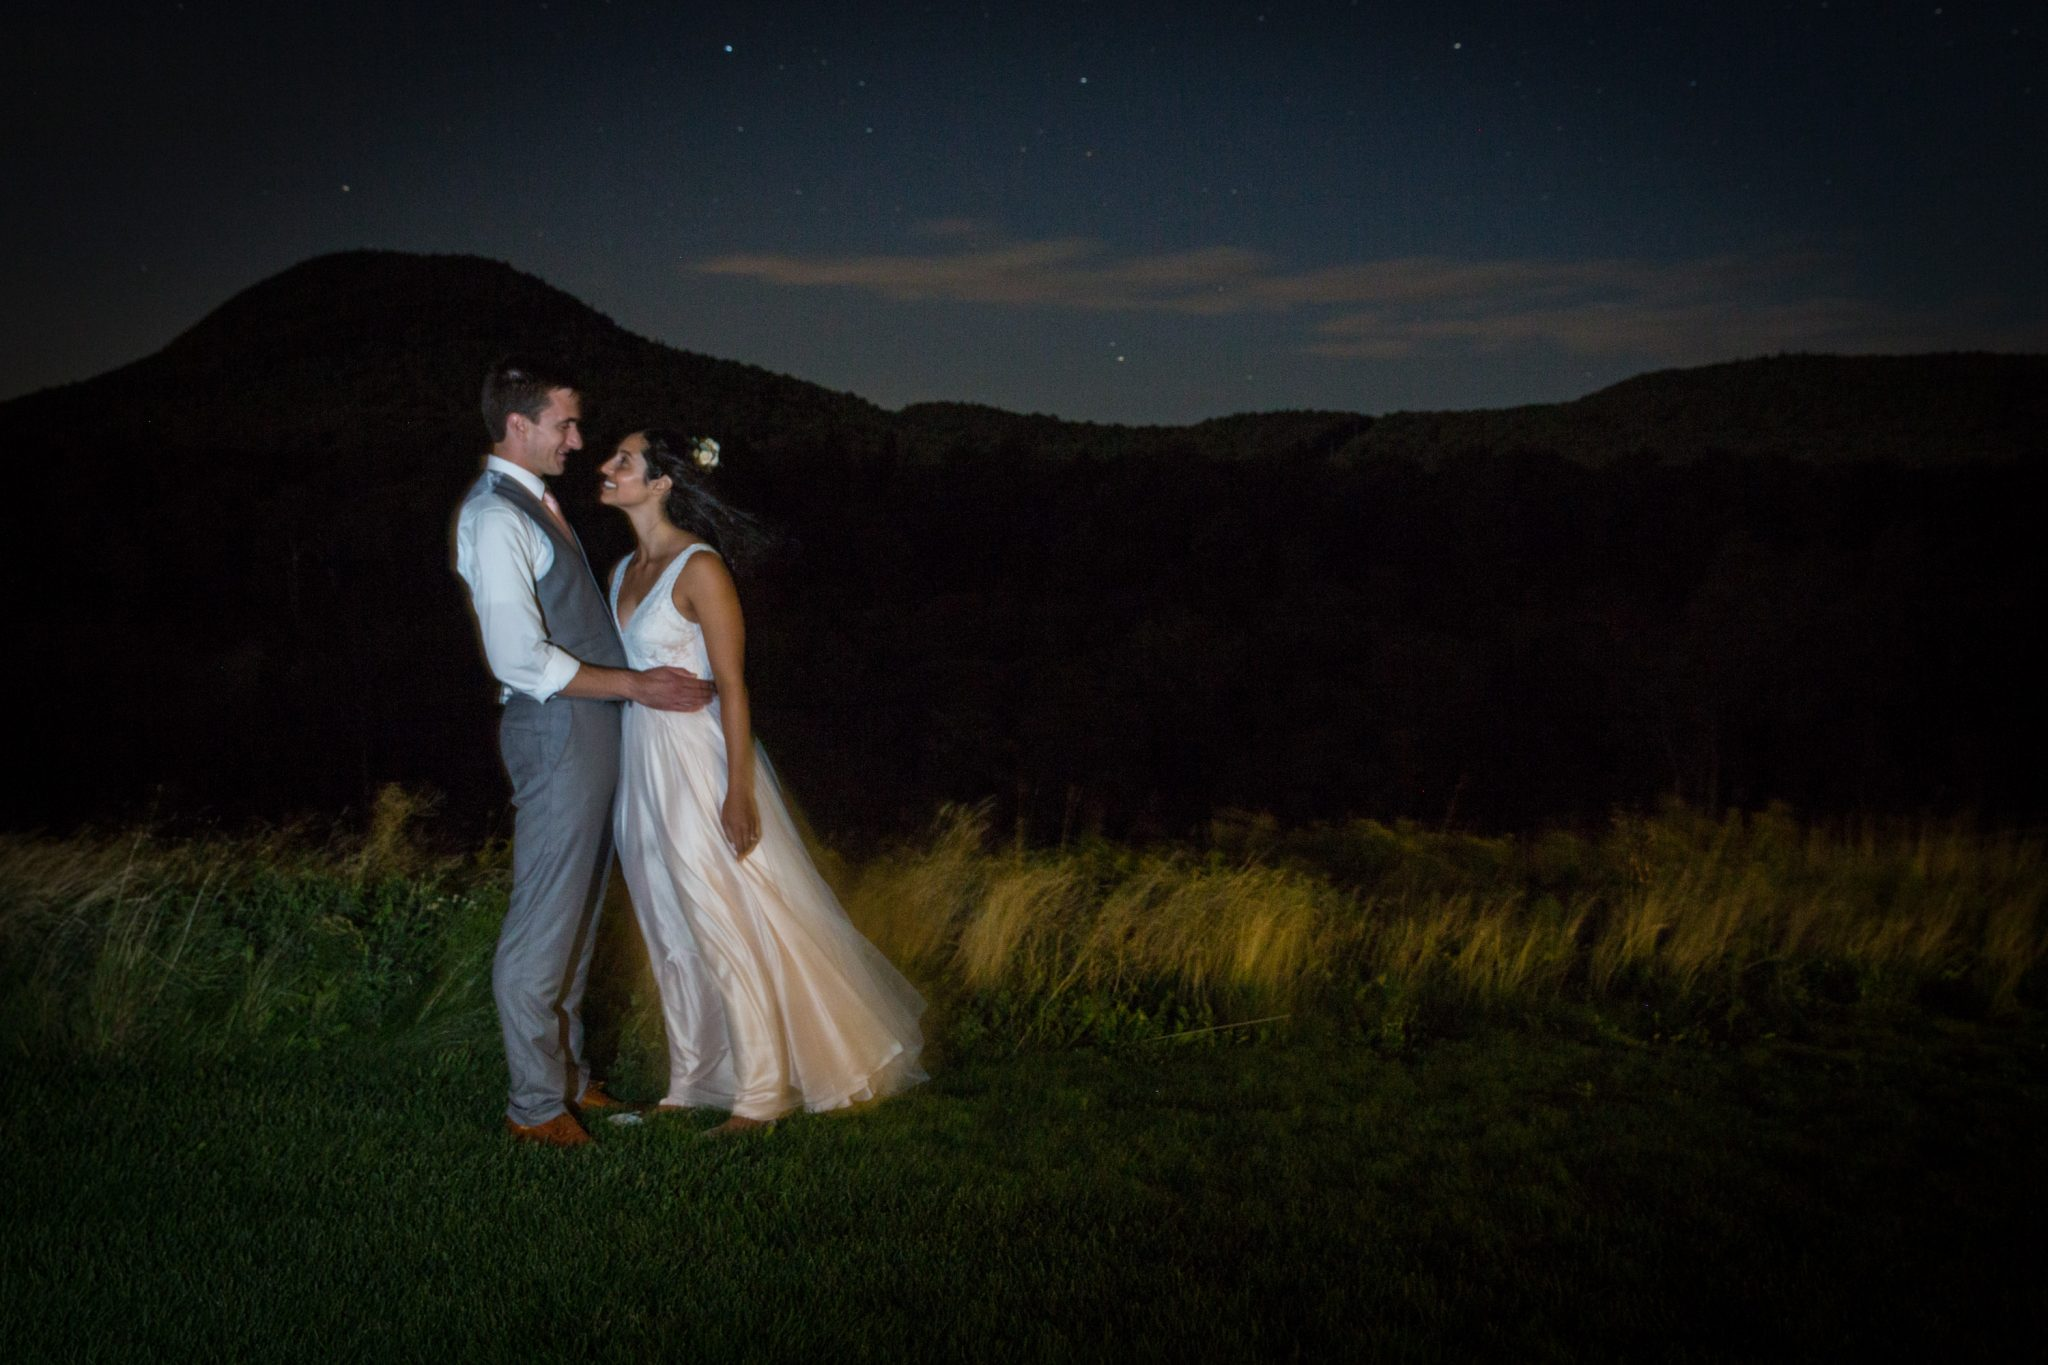 Night photograph of stars and wedding couple at Jay Peak in Vermont